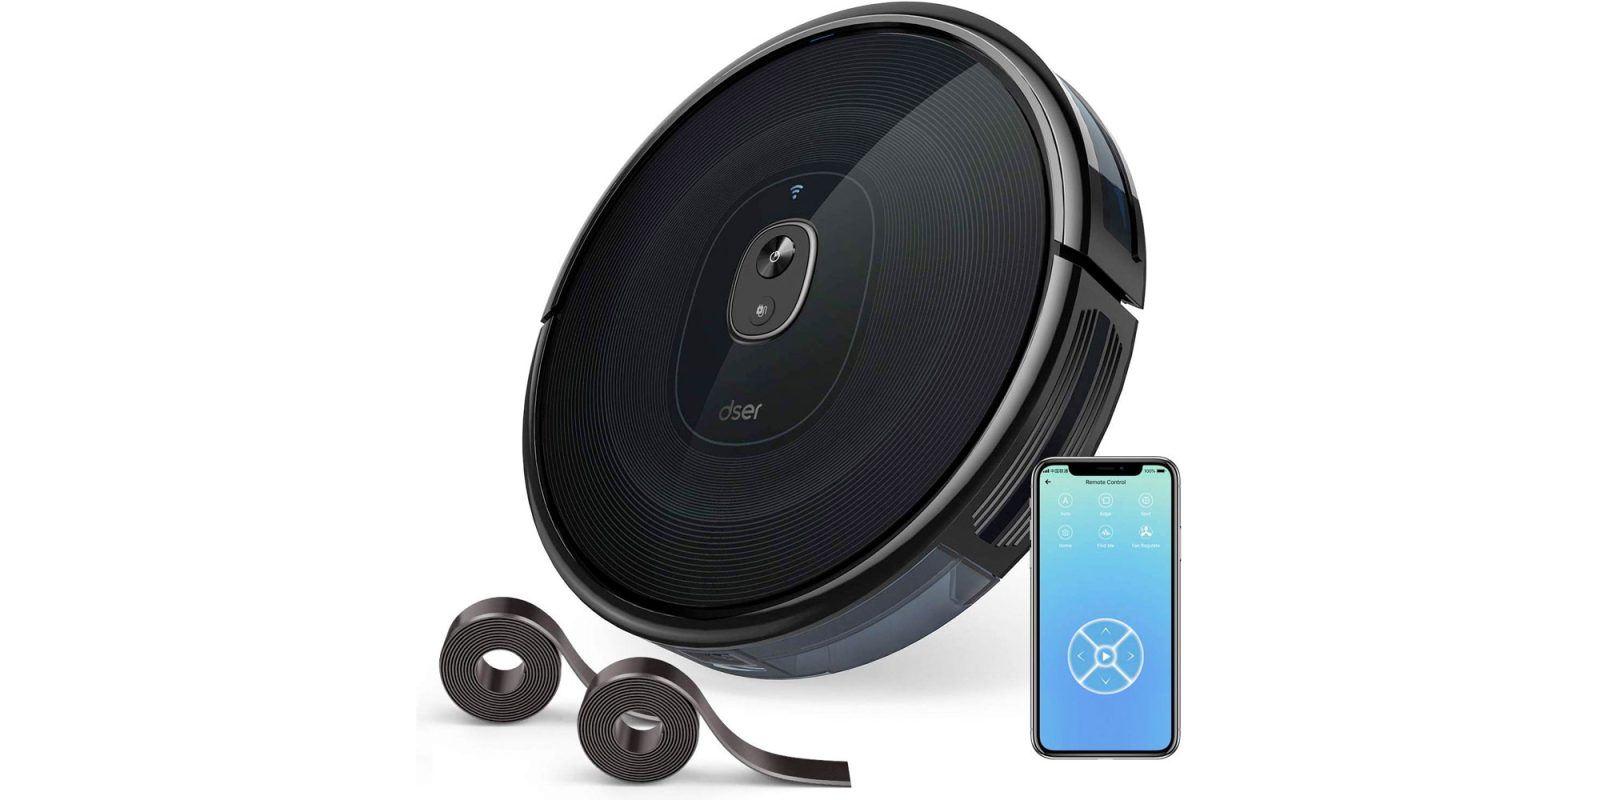 Step up your cleaning game with this smart robot vacuum at $143.50 (Reg. $220)